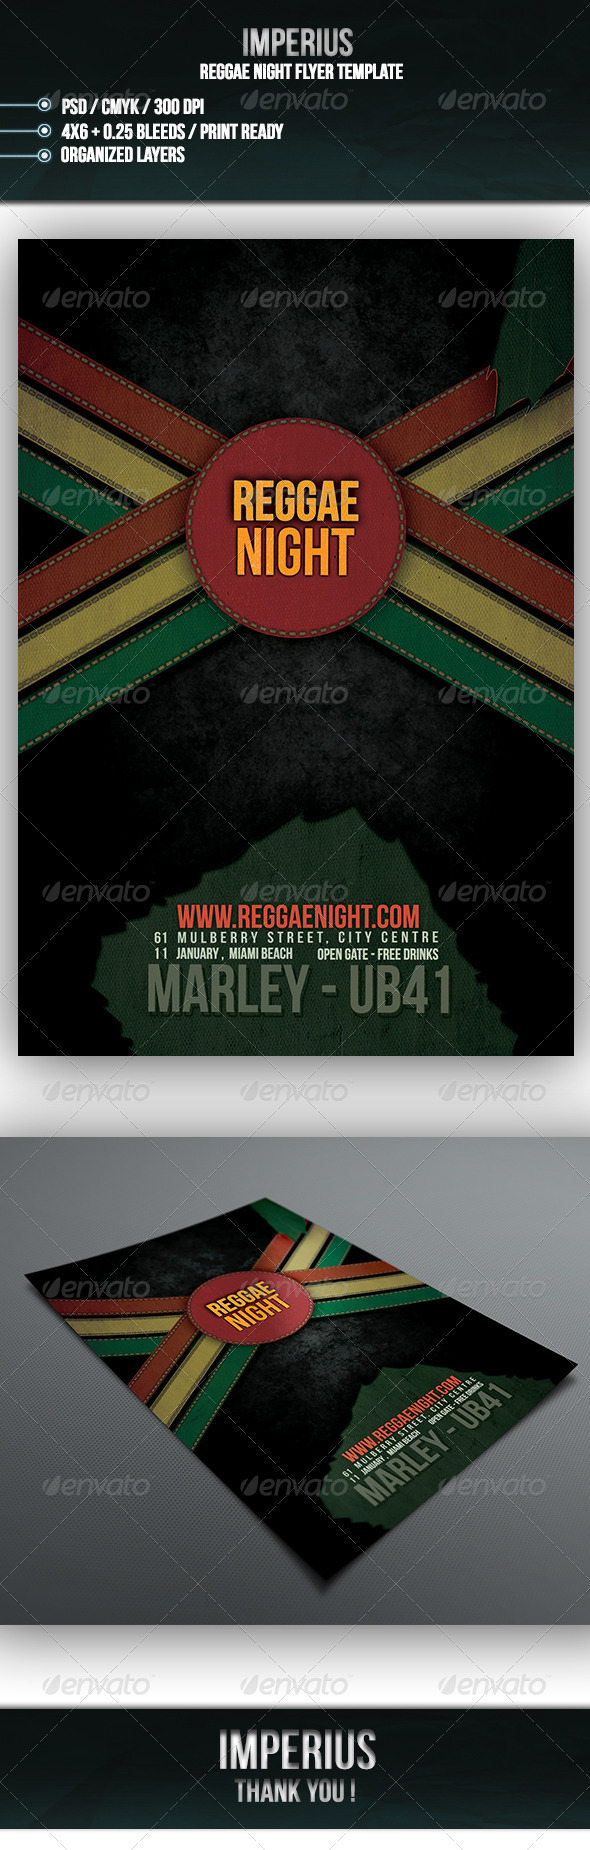 Reggae Night Flyer - Flyers Print Templates